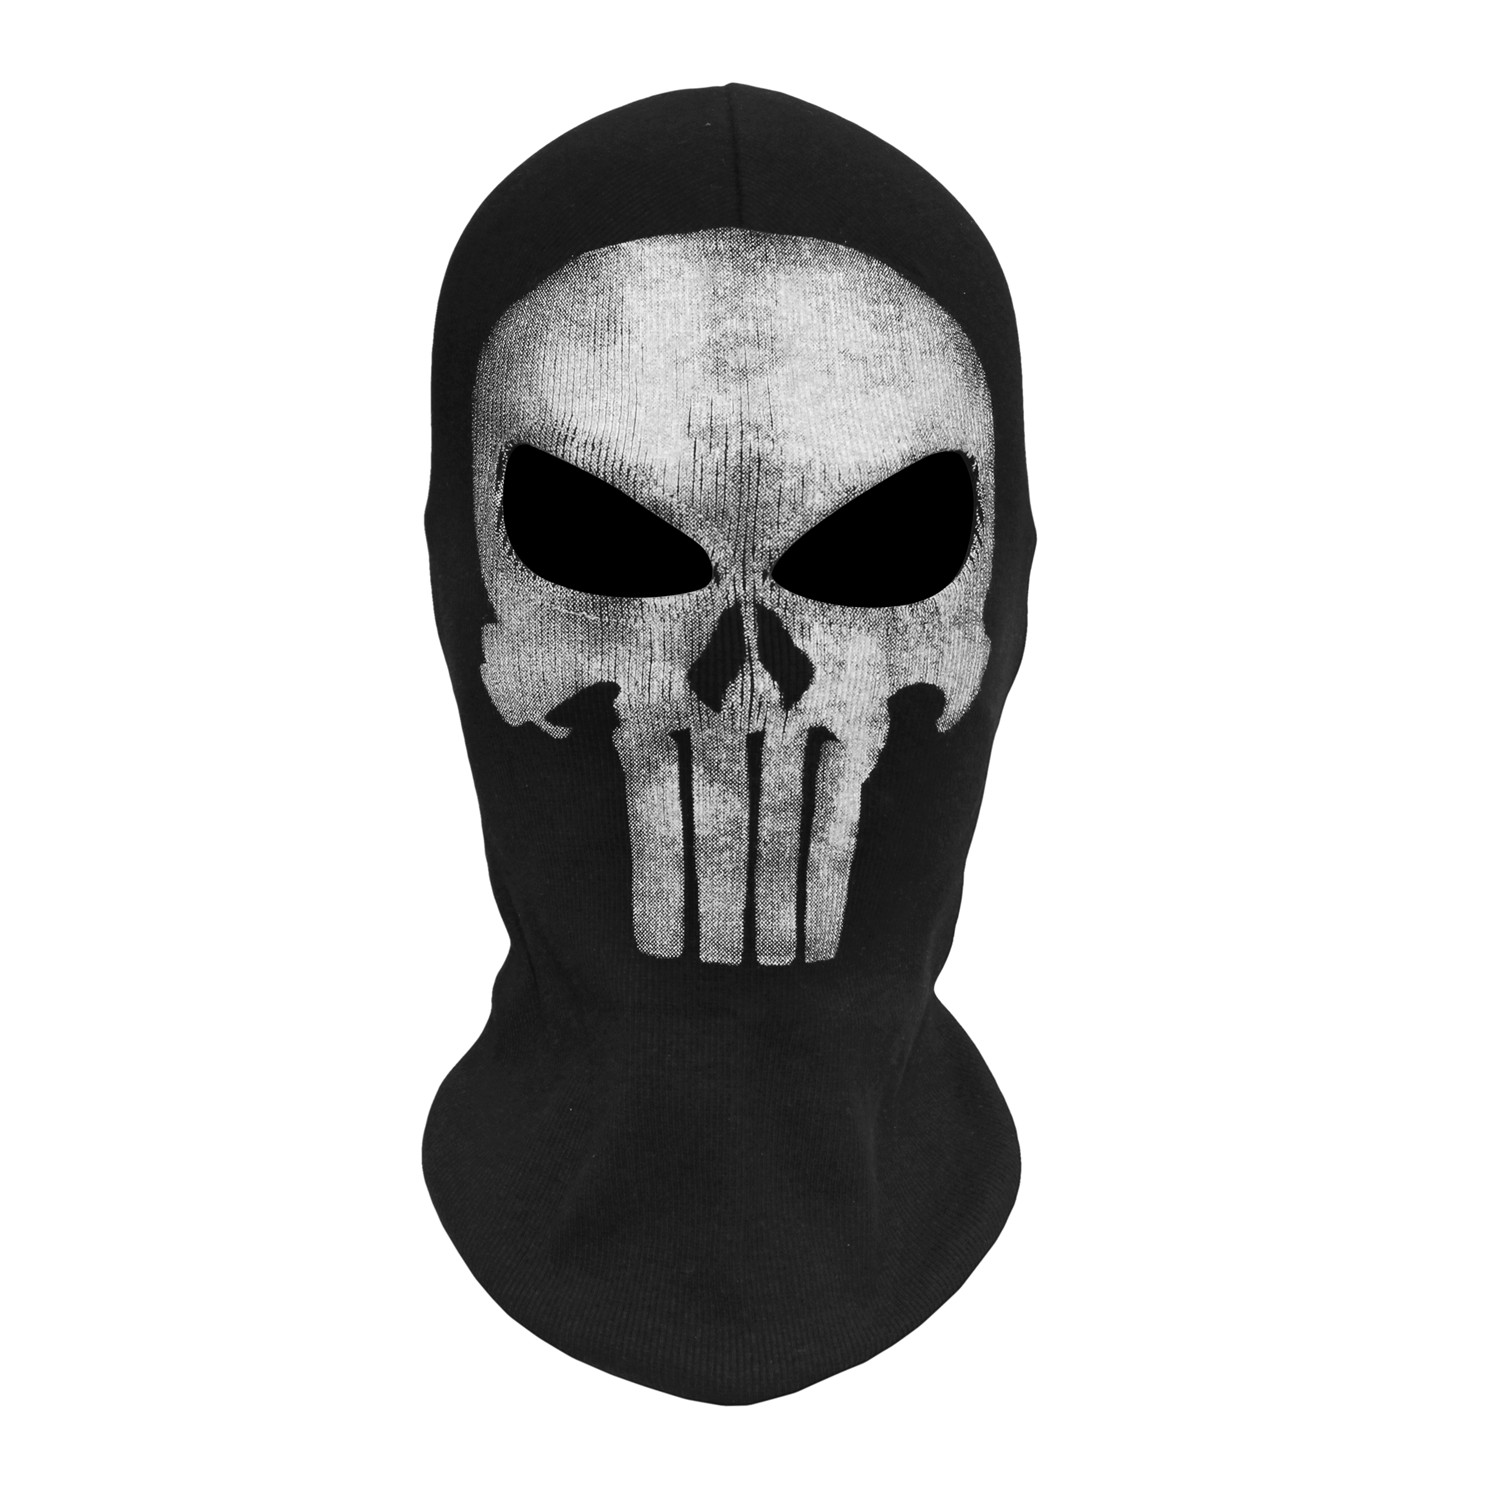 Compare Prices on Ghost Airsoft- Online Shopping/Buy Low Price ...